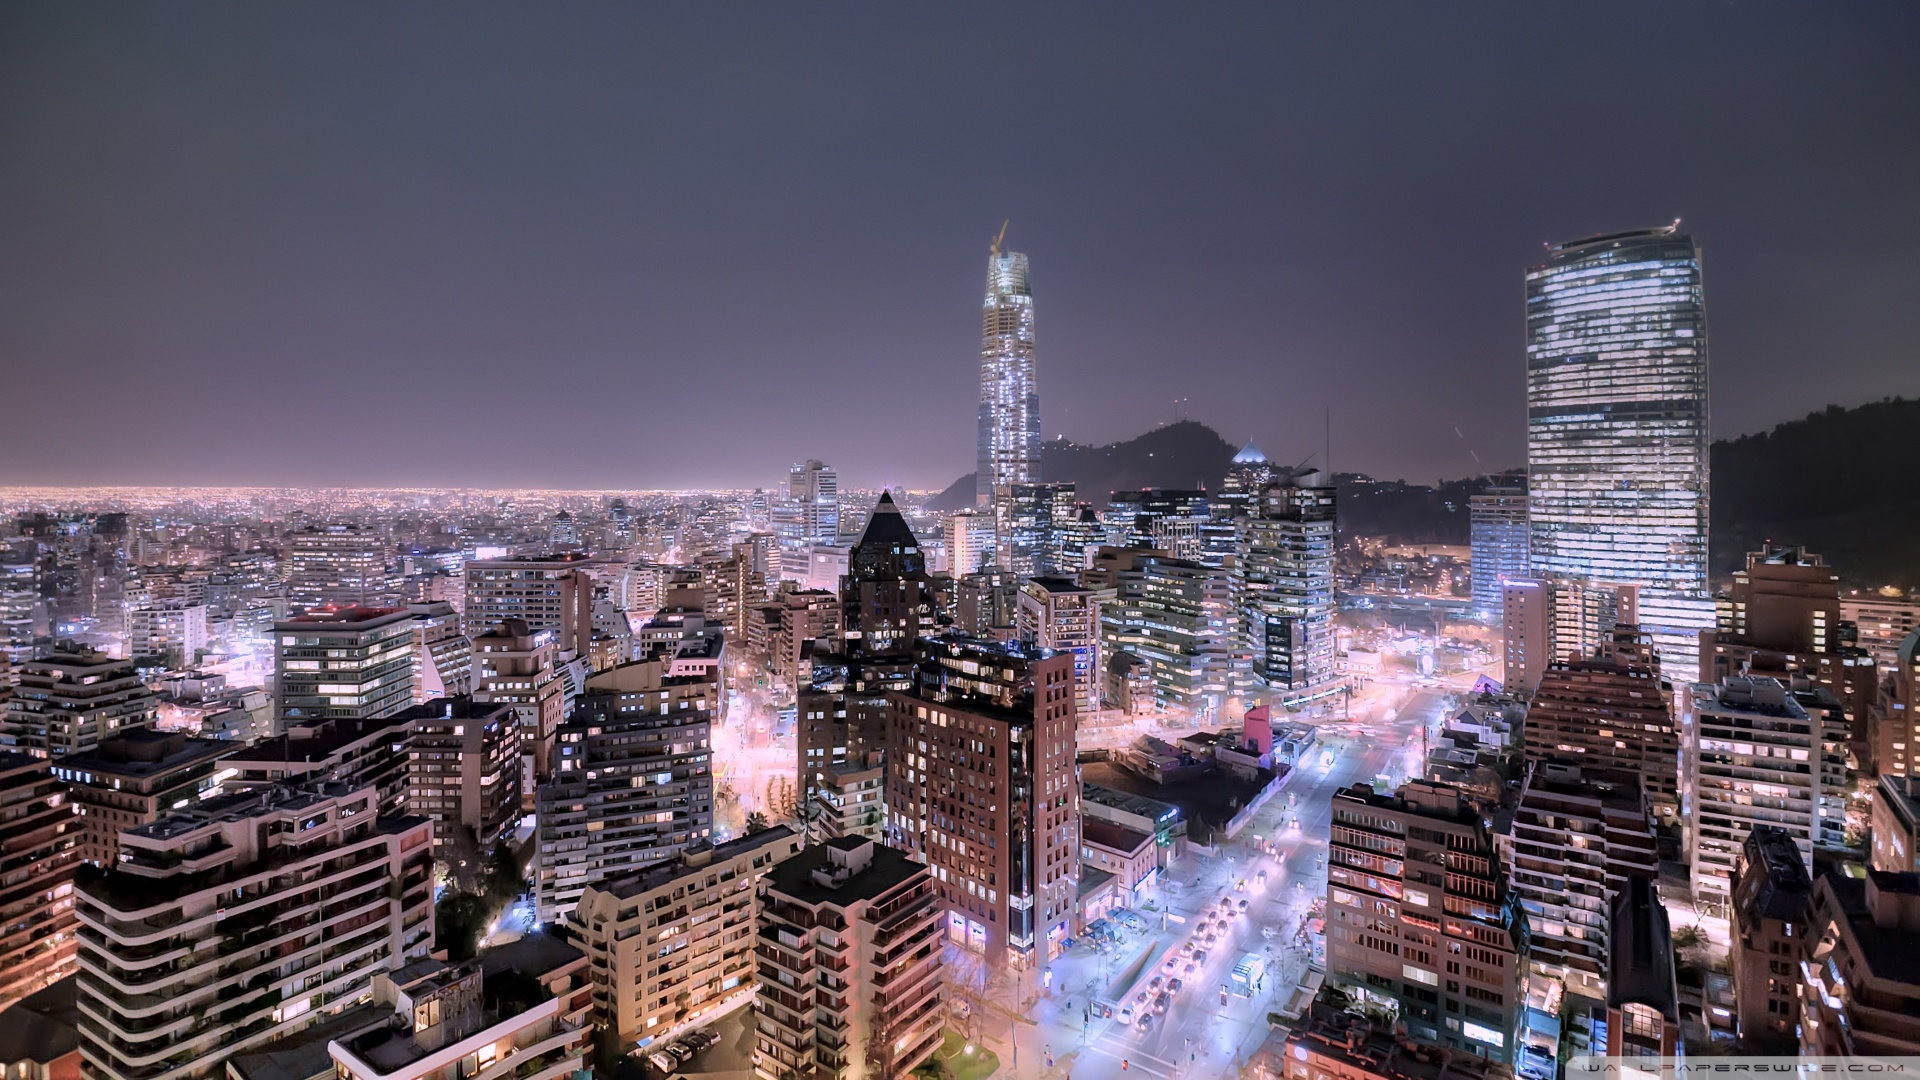 santiago_chile_hd_las_condes-wallpaper-1920×1080